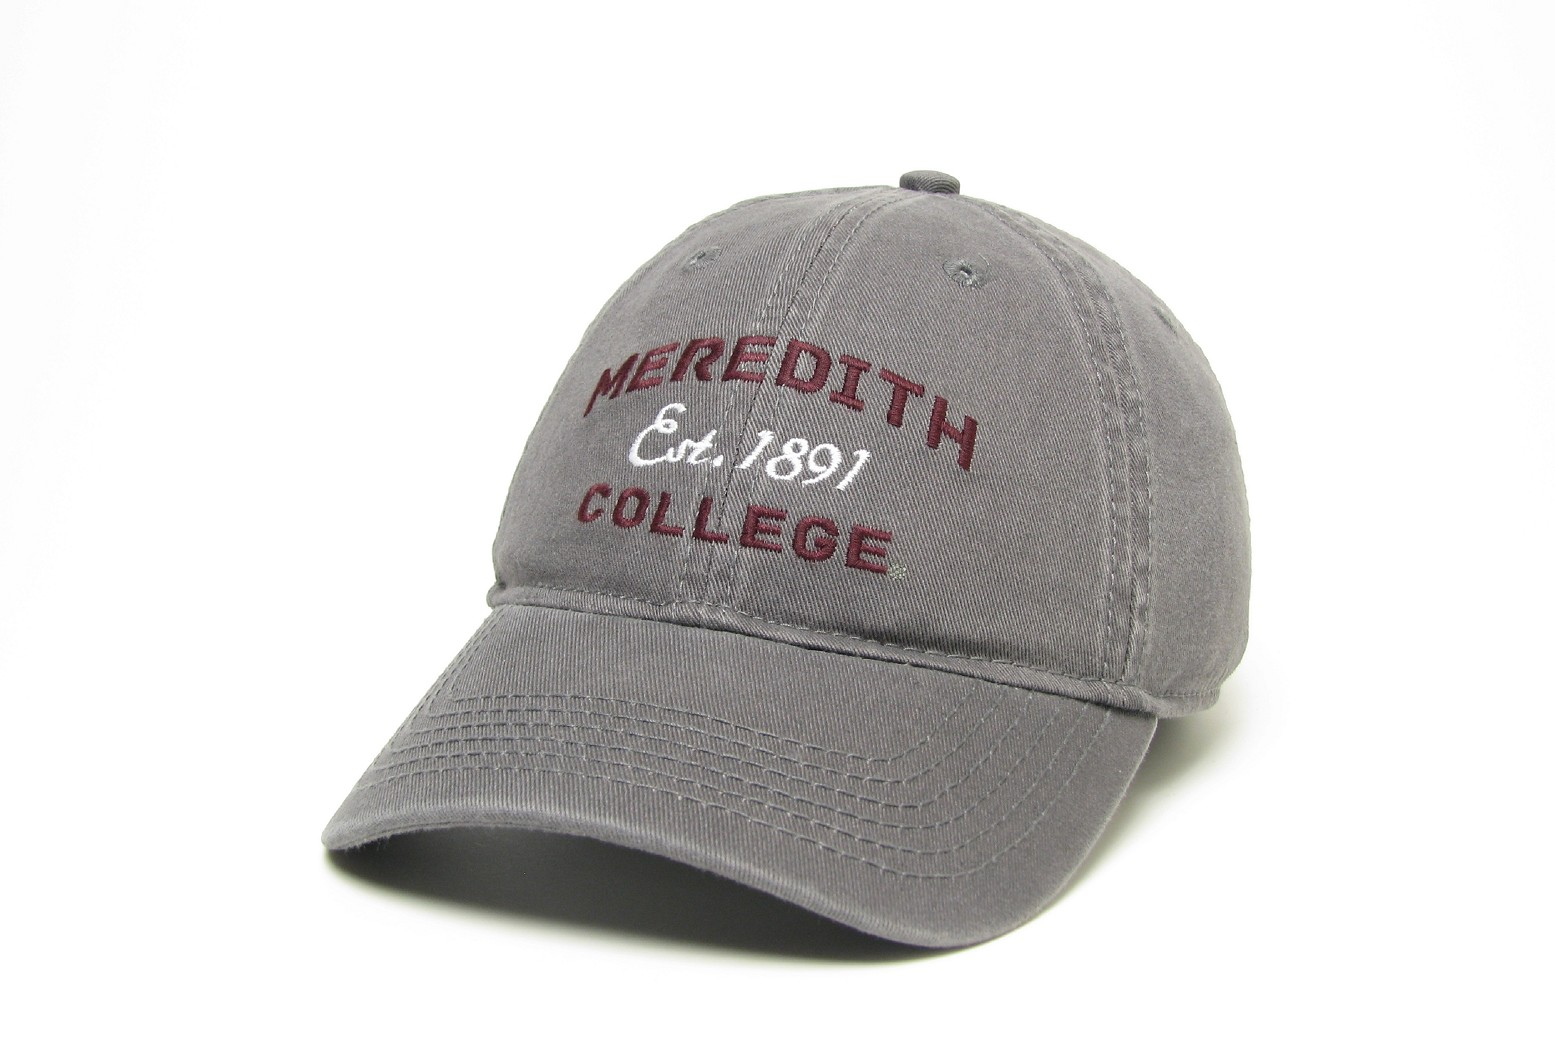 Image for the Relaxed Twill Hat Legacy Meredith Est. Date College product